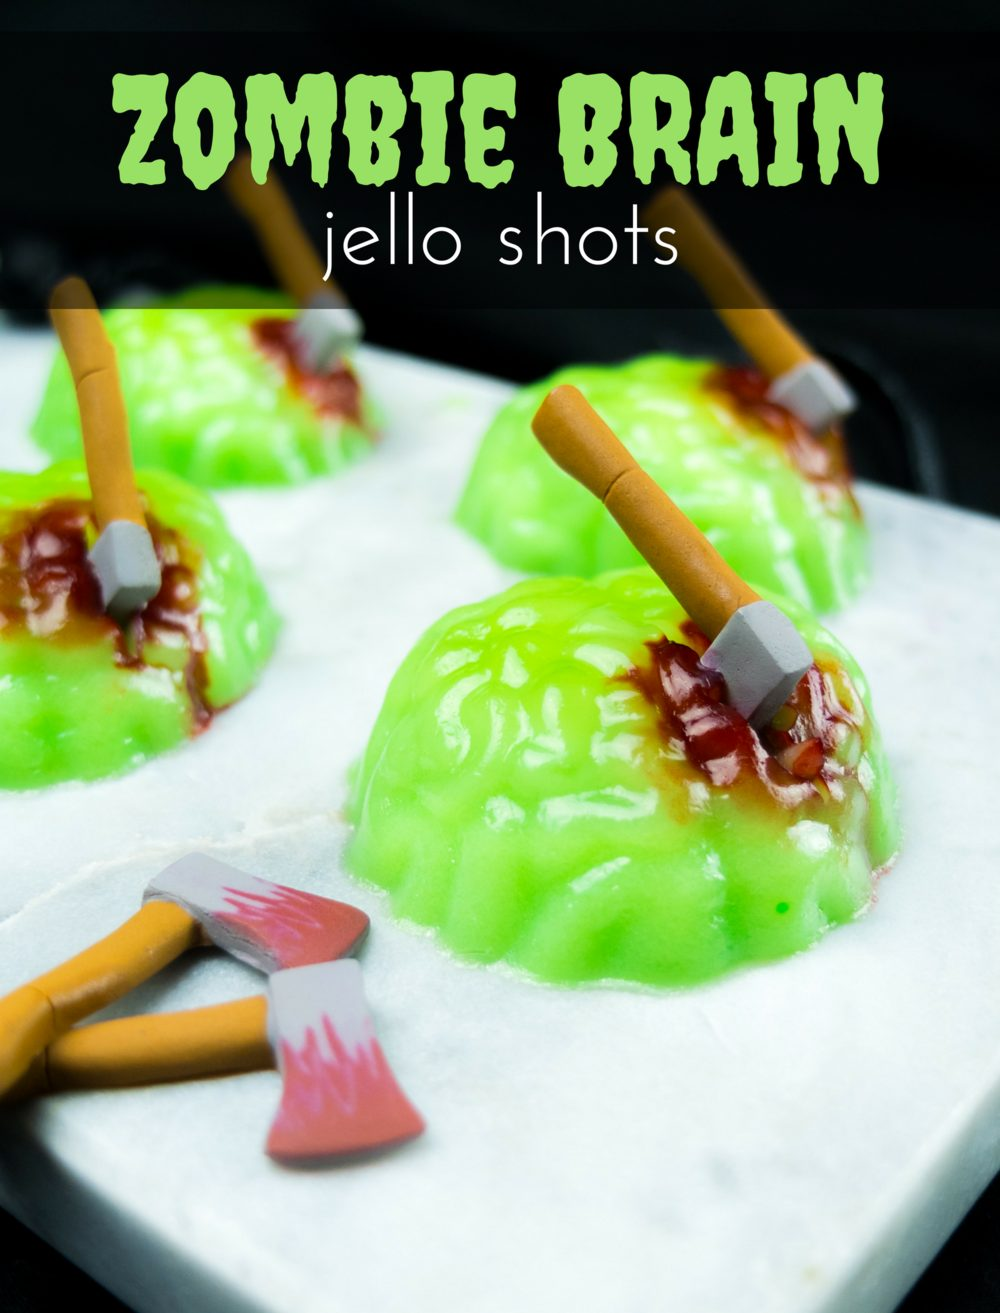 Zombie brain jello shots elle talk easy gore halloween recipe for zombie brain jello shots using a plastic brain mold and candy forumfinder